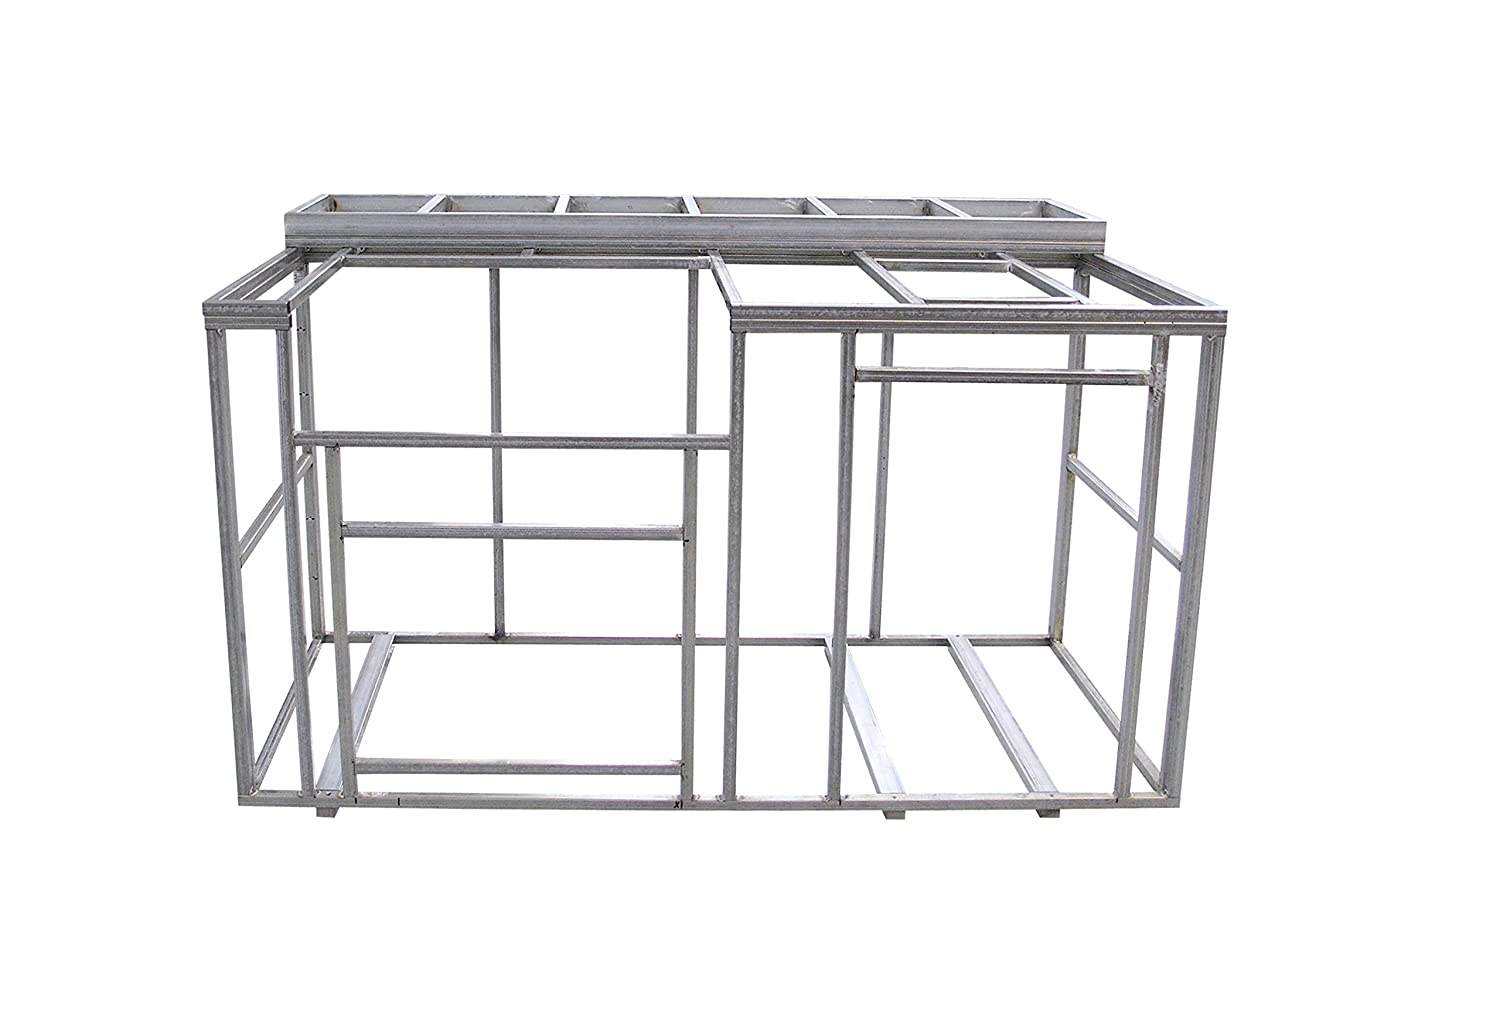 Amazon.com : Cal Flame 6\' Outdoor Kitchen Island Frame Kit with ...